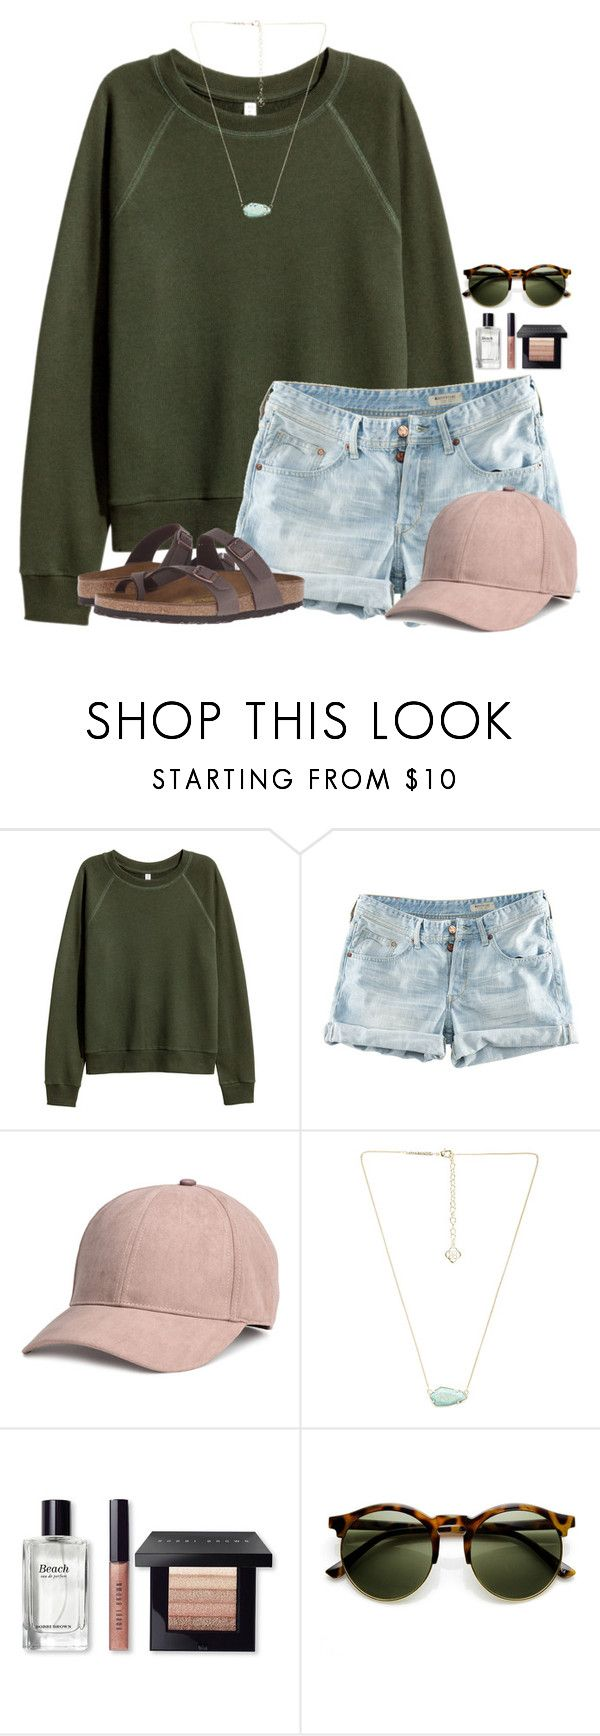 """~I love blush~"" by flroasburn on Polyvore featuring H&M, Kendra Scott, Bobbi Brown Cosmetics and Birkenstock"